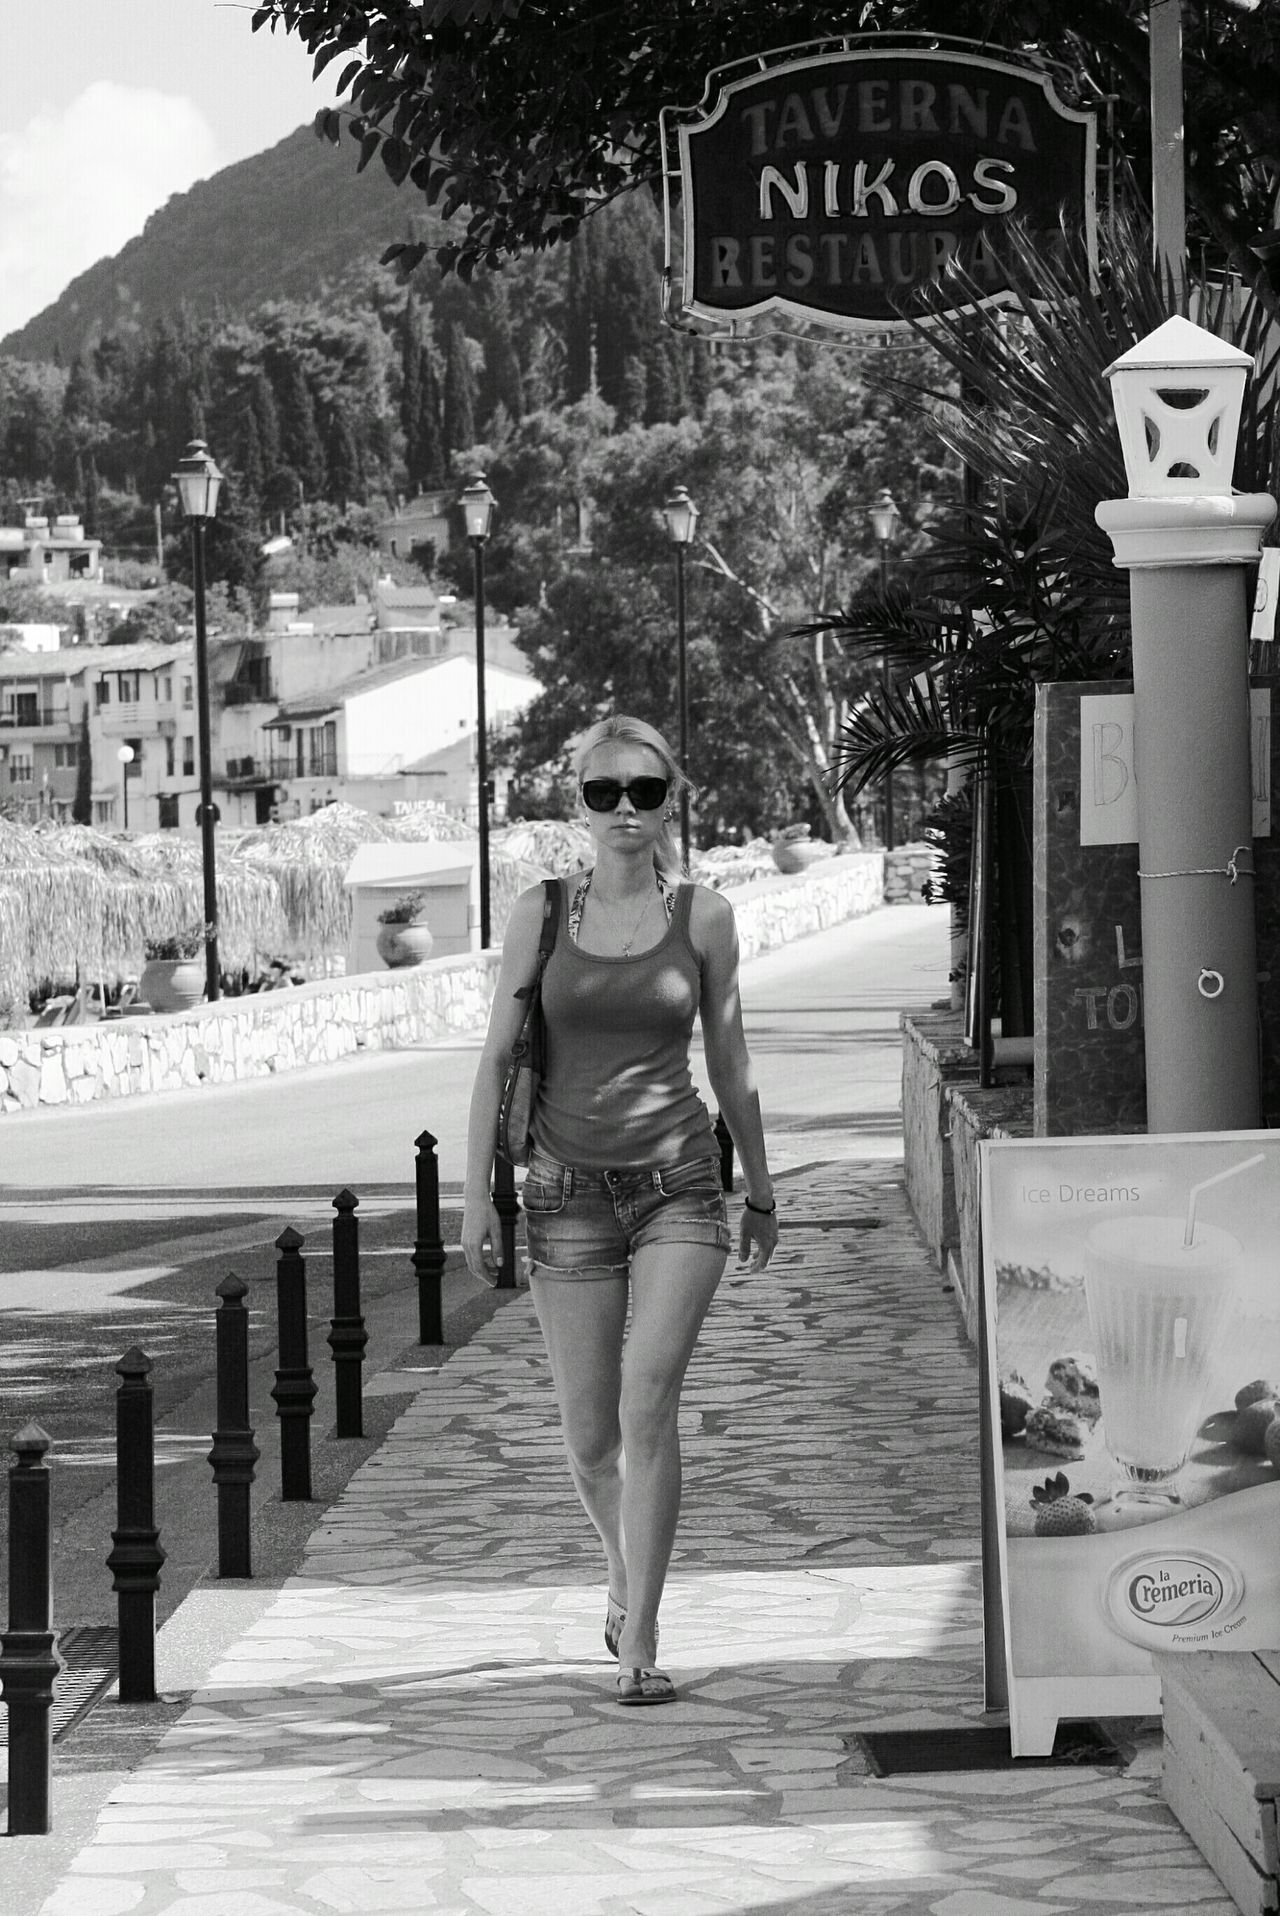 Young Women Full Length Front View Walking Street On Holiday Restaurant Corfu Mountains In Background Street Photography